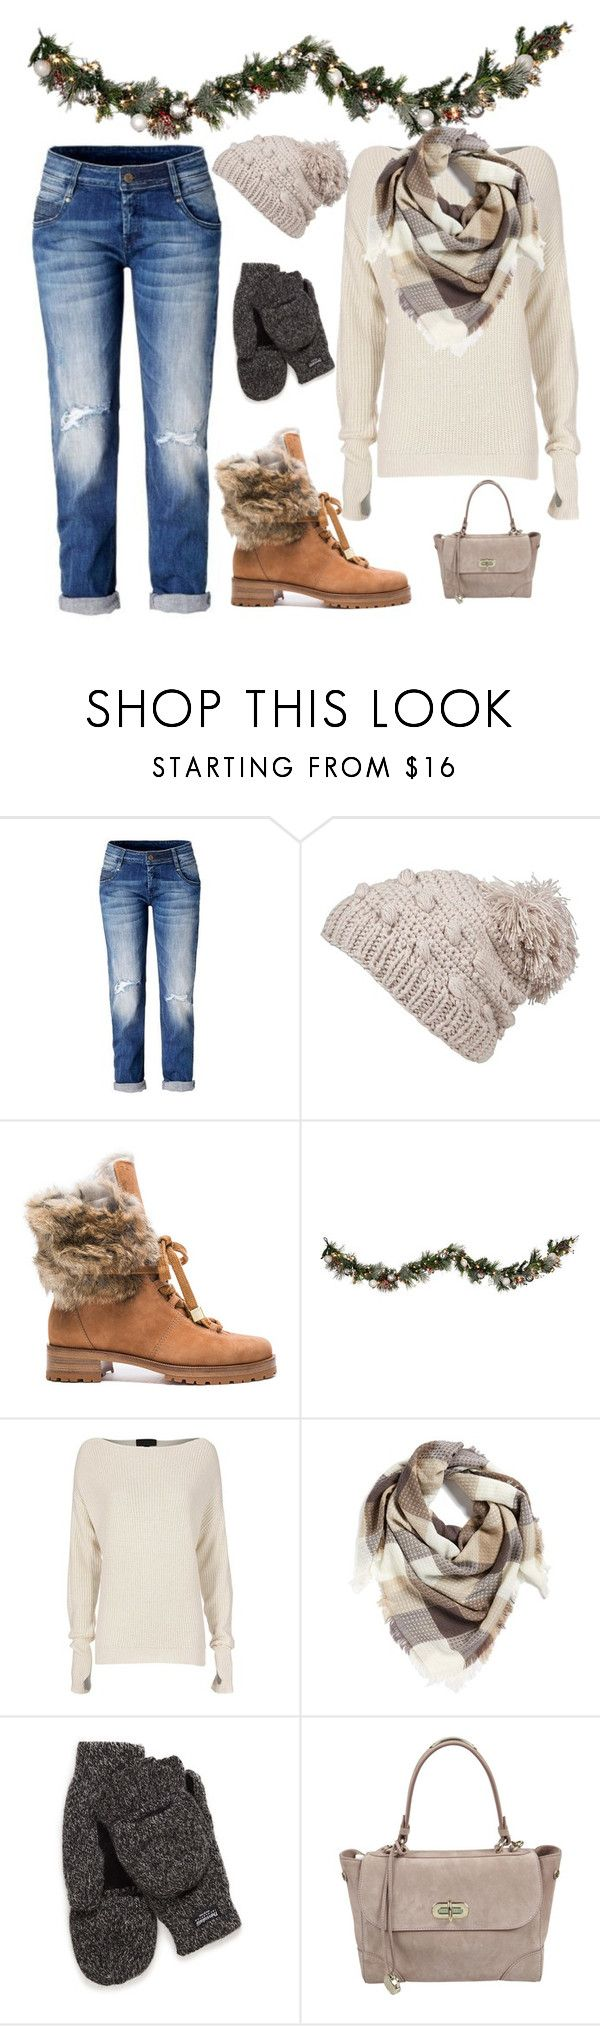 """""""Winter outfit"""" by haleyshimmer ❤ liked on Polyvore featuring prAna, Alexandre Birman, Improvements, Exclusive for Intermix, BP. and Ralph Lauren"""